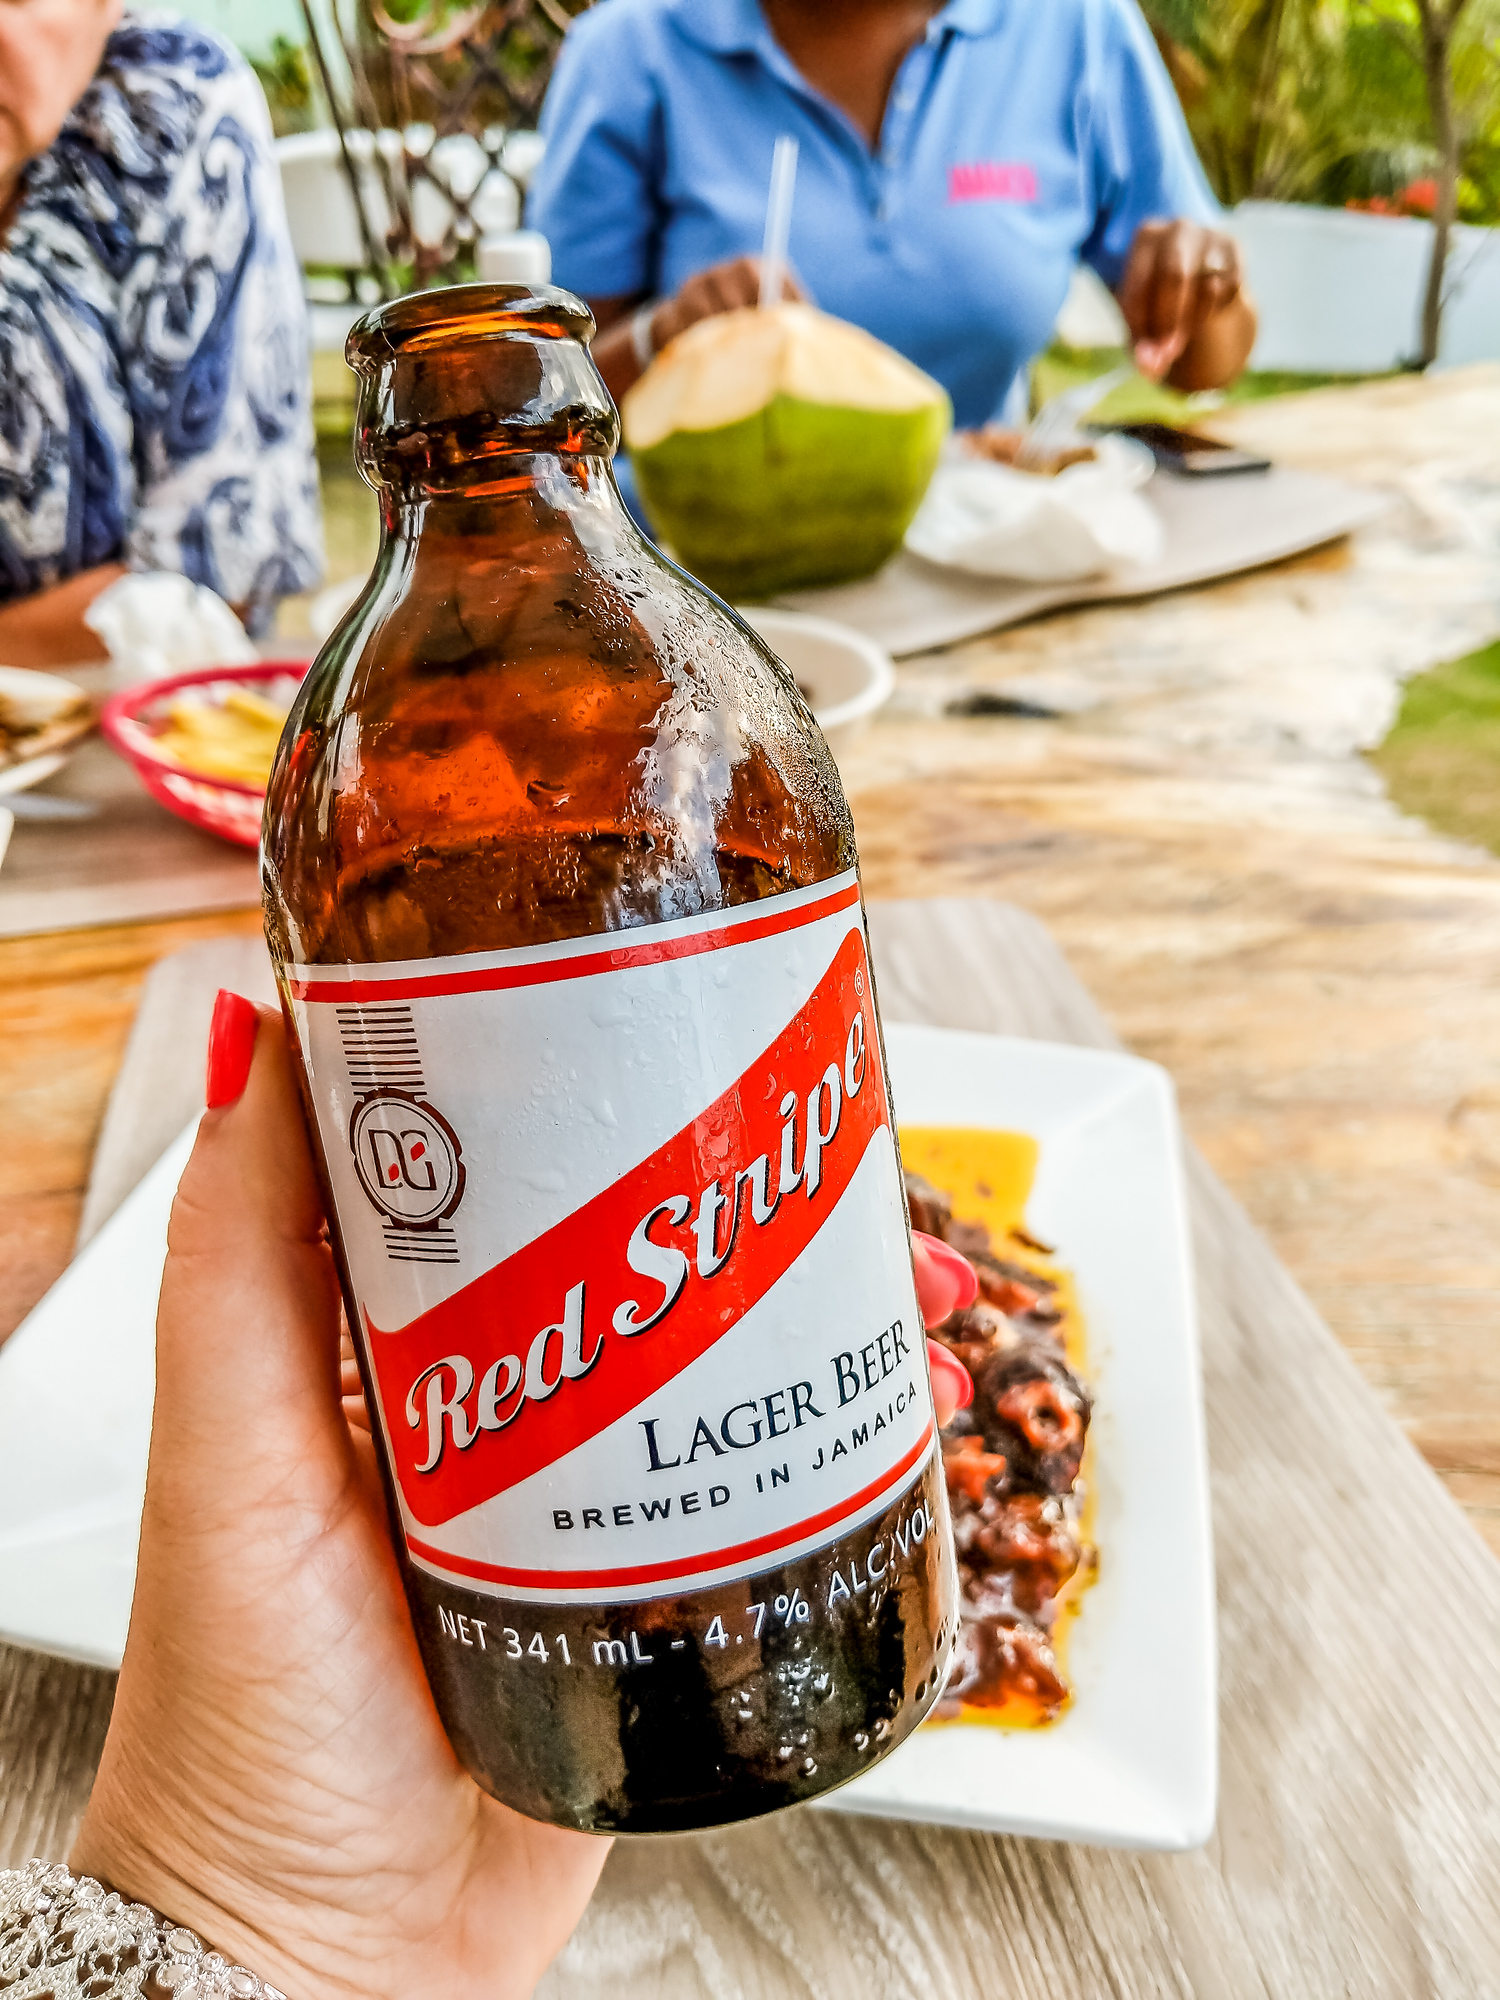 Red Stripe beer is just one traditional Jamaican food you need to try. The ultimate guide for what to eat in Jamaica, our best picks for 27 dishes, 6 desserts and 12 drinks you won't want to leave the island without trying.